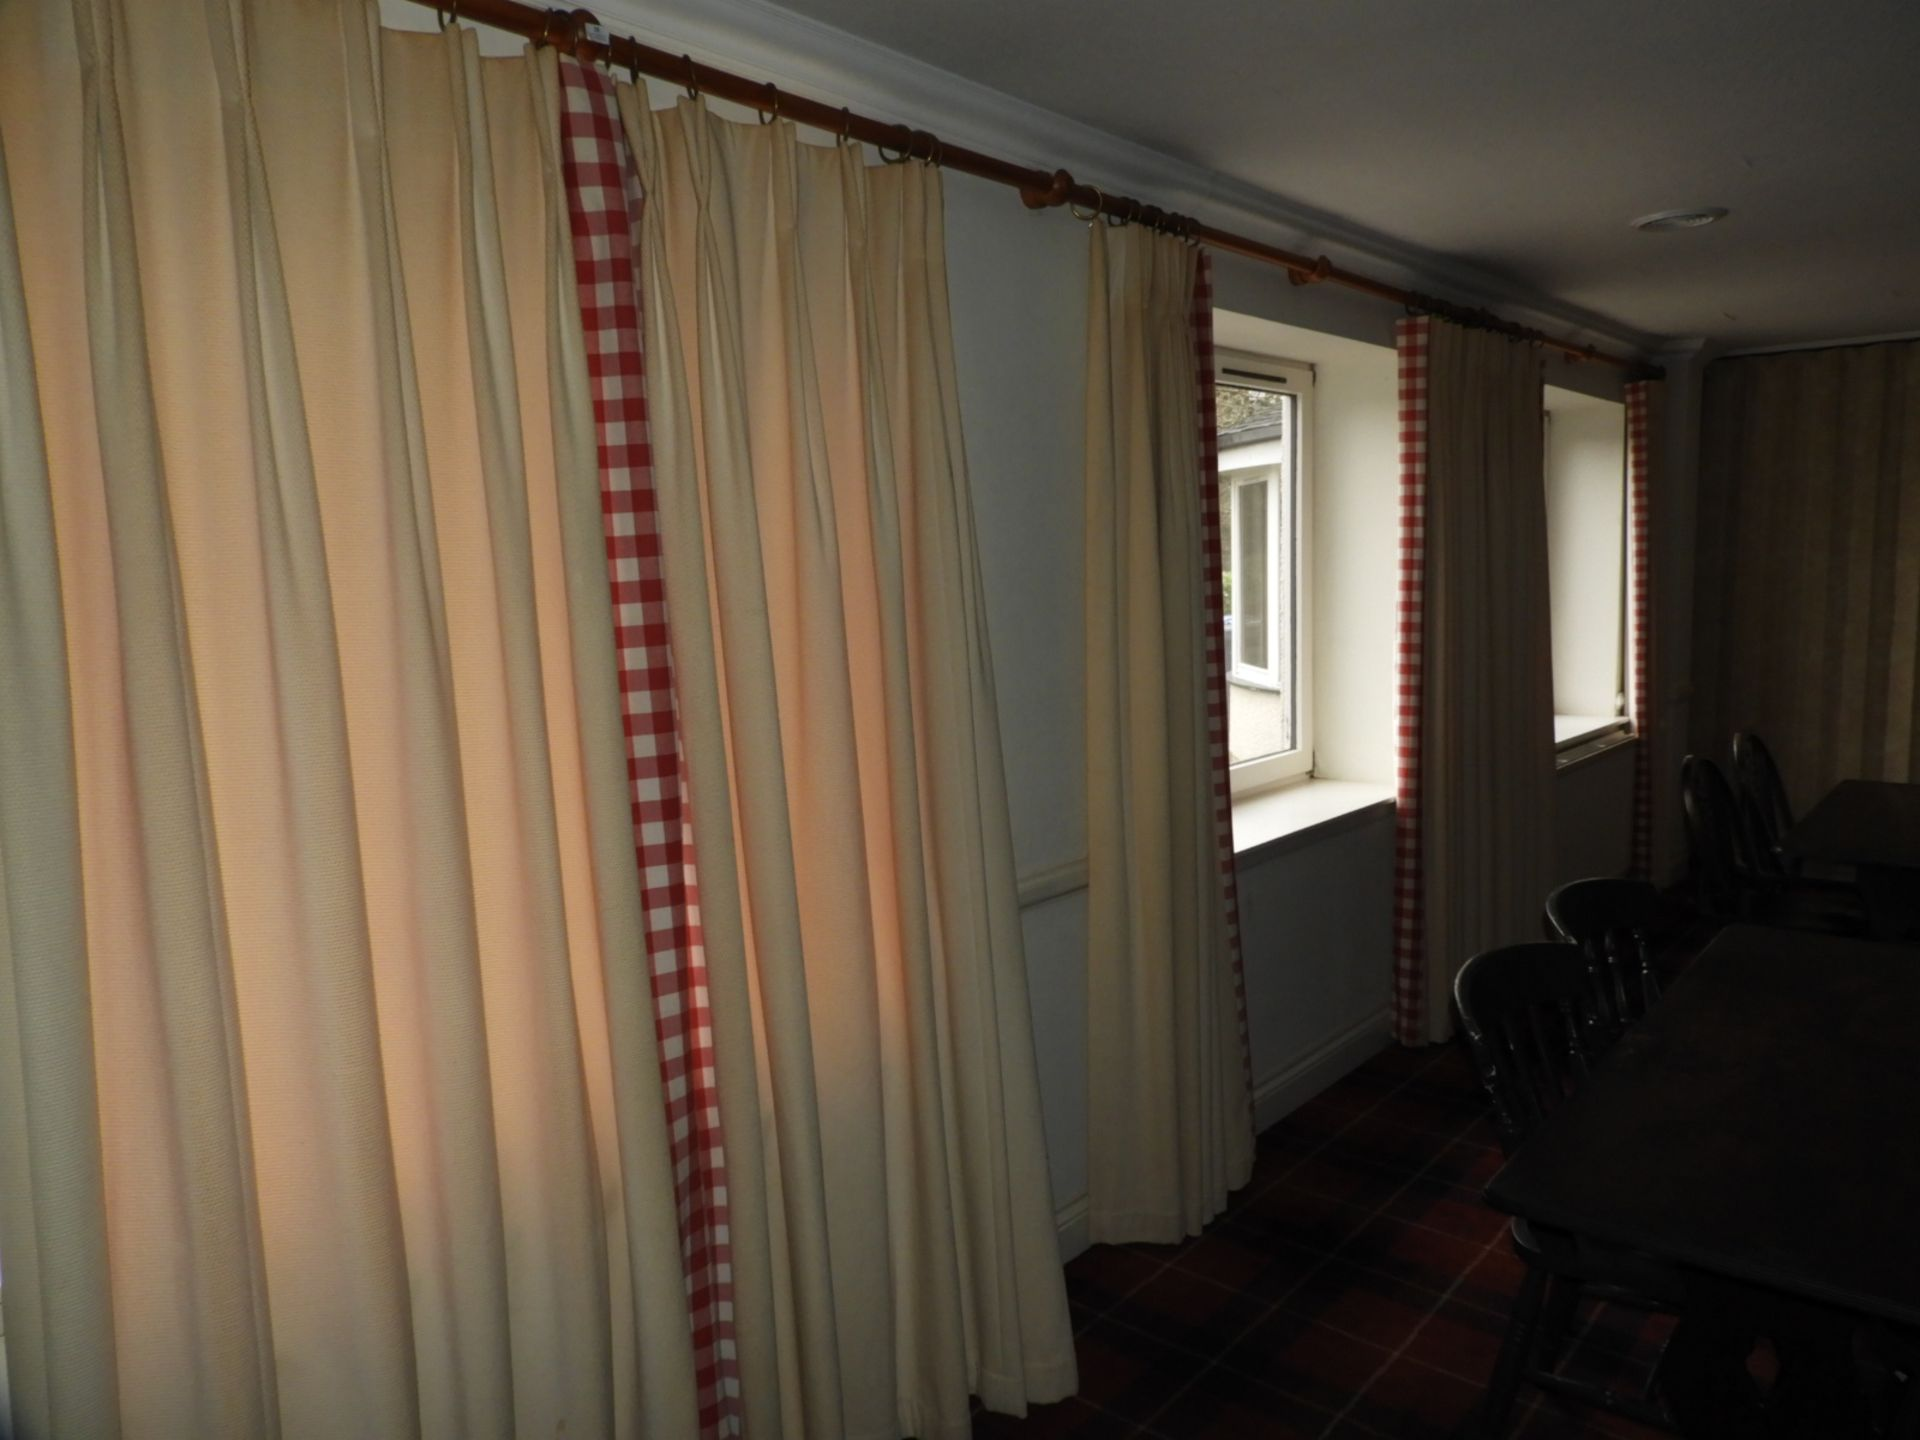 Lot 19 - *Four Pairs of Curtains with Wood Poles (Each Curt